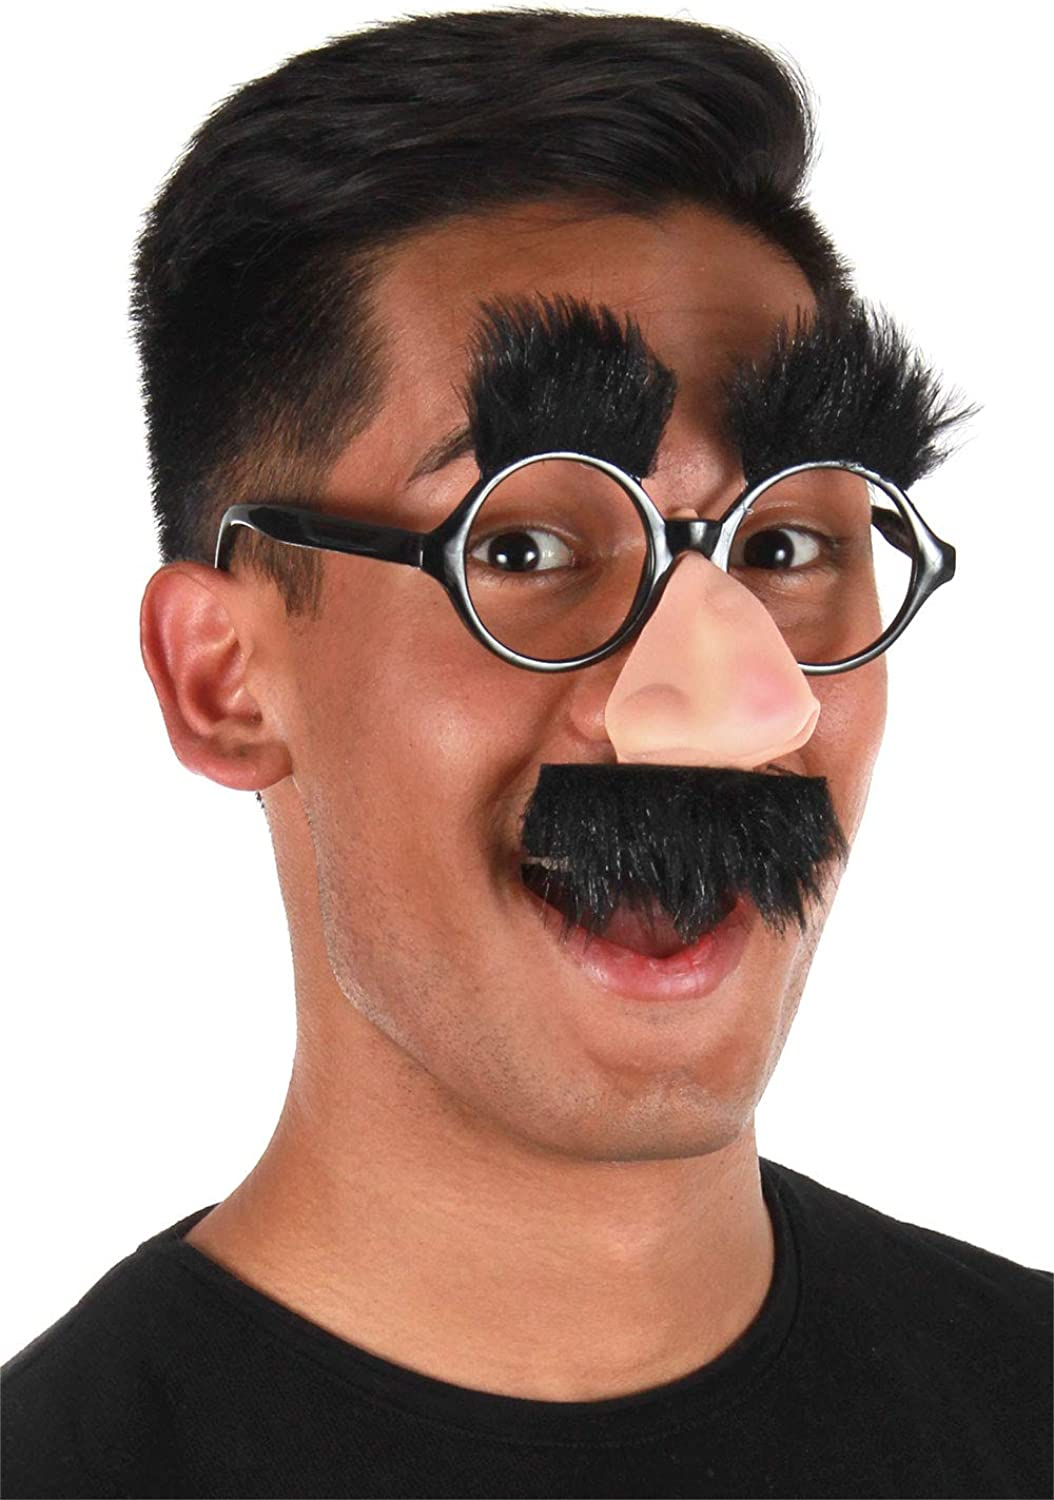 Amazon Com Elope Licensed Groucho Marx Costume Nose Glasses With Mustache Black Clothing